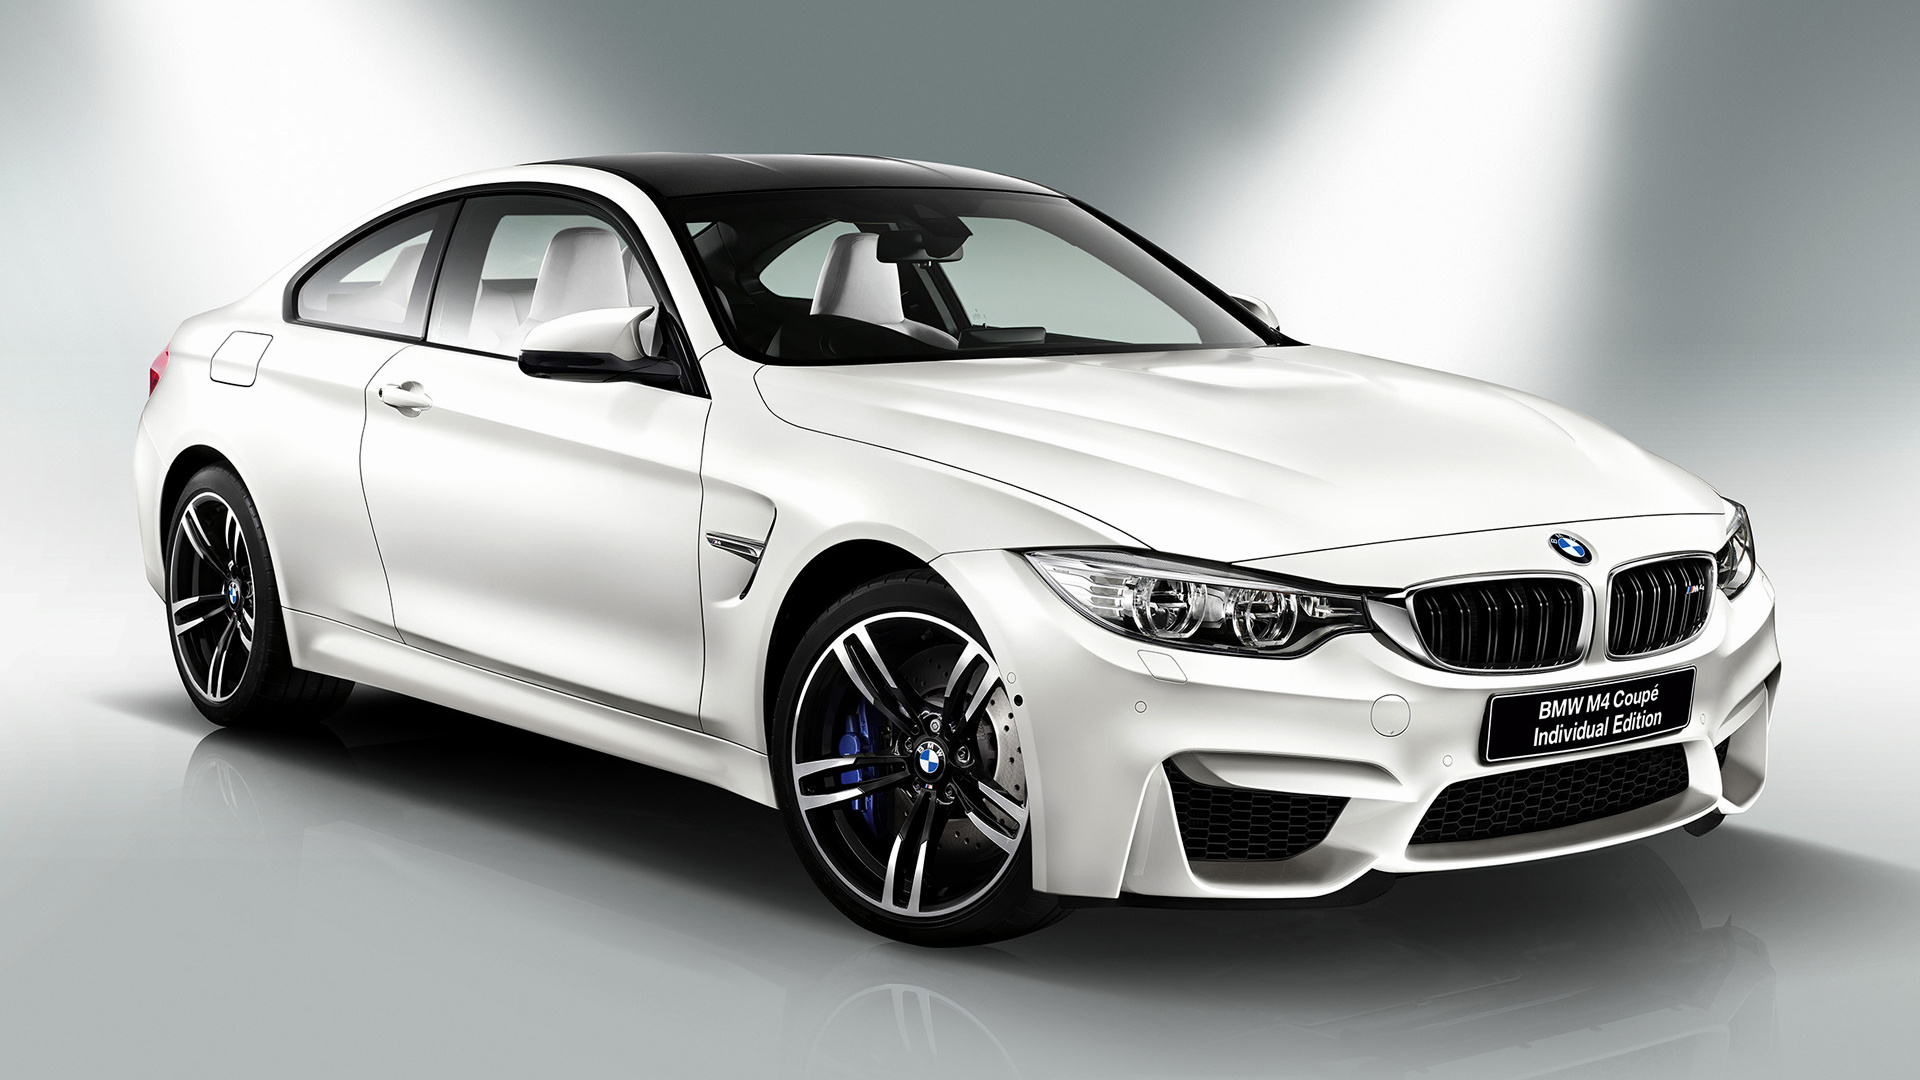 BMW M4 Coupe Individual Edition (2015) JP Wallpapers and ...